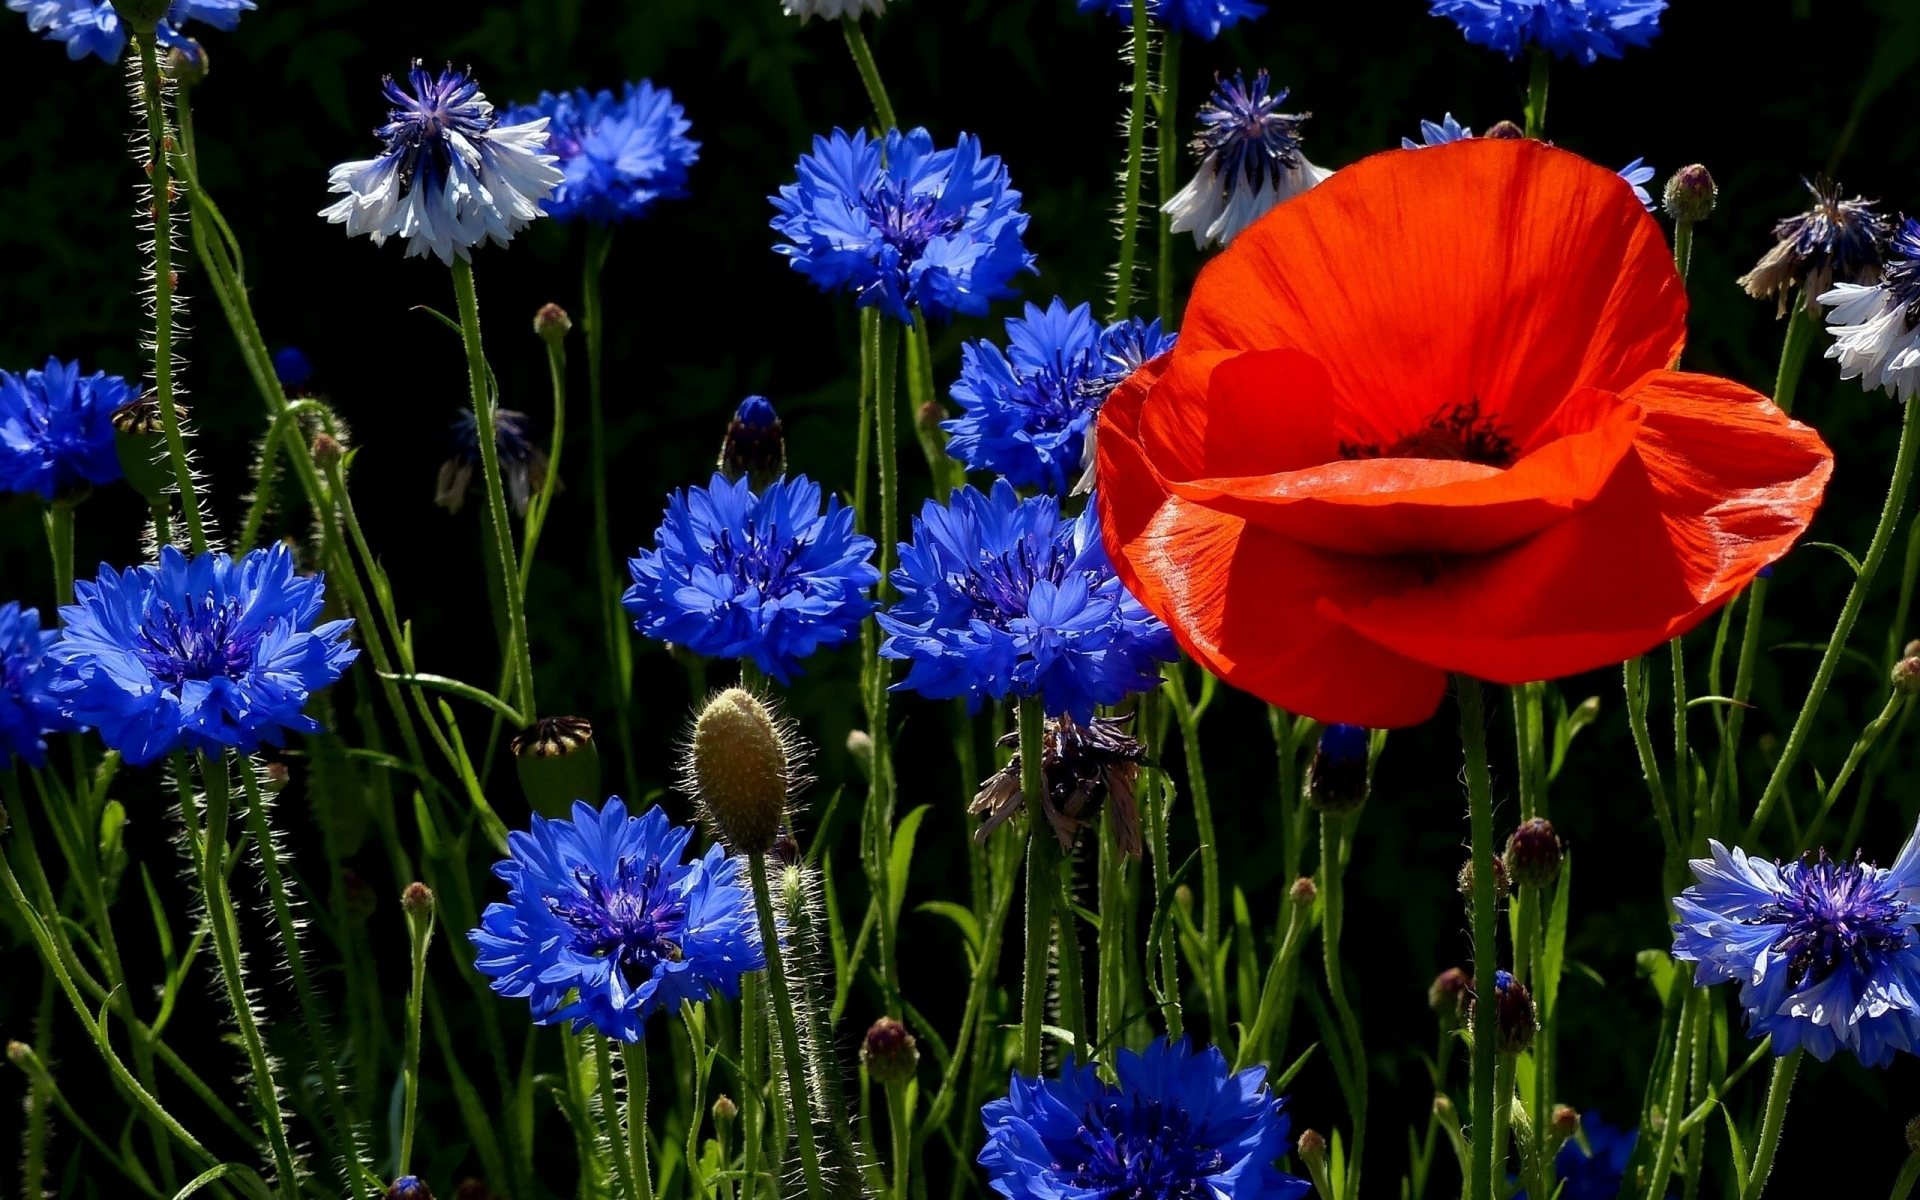 Poppies and Cornflowers for 1920 x 1200 widescreen resolution